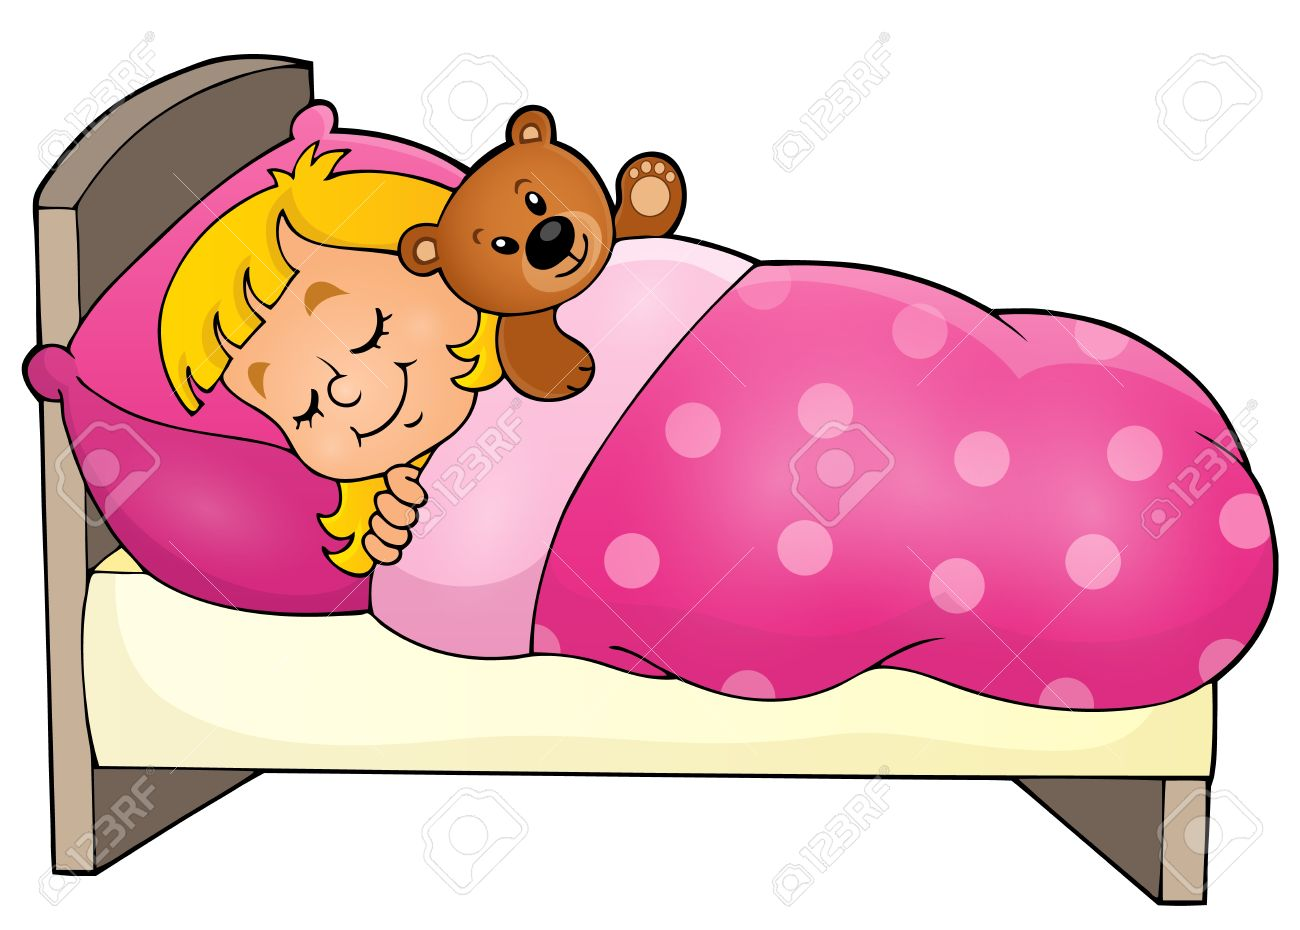 15 sleep clipart for free download on ya webdesign